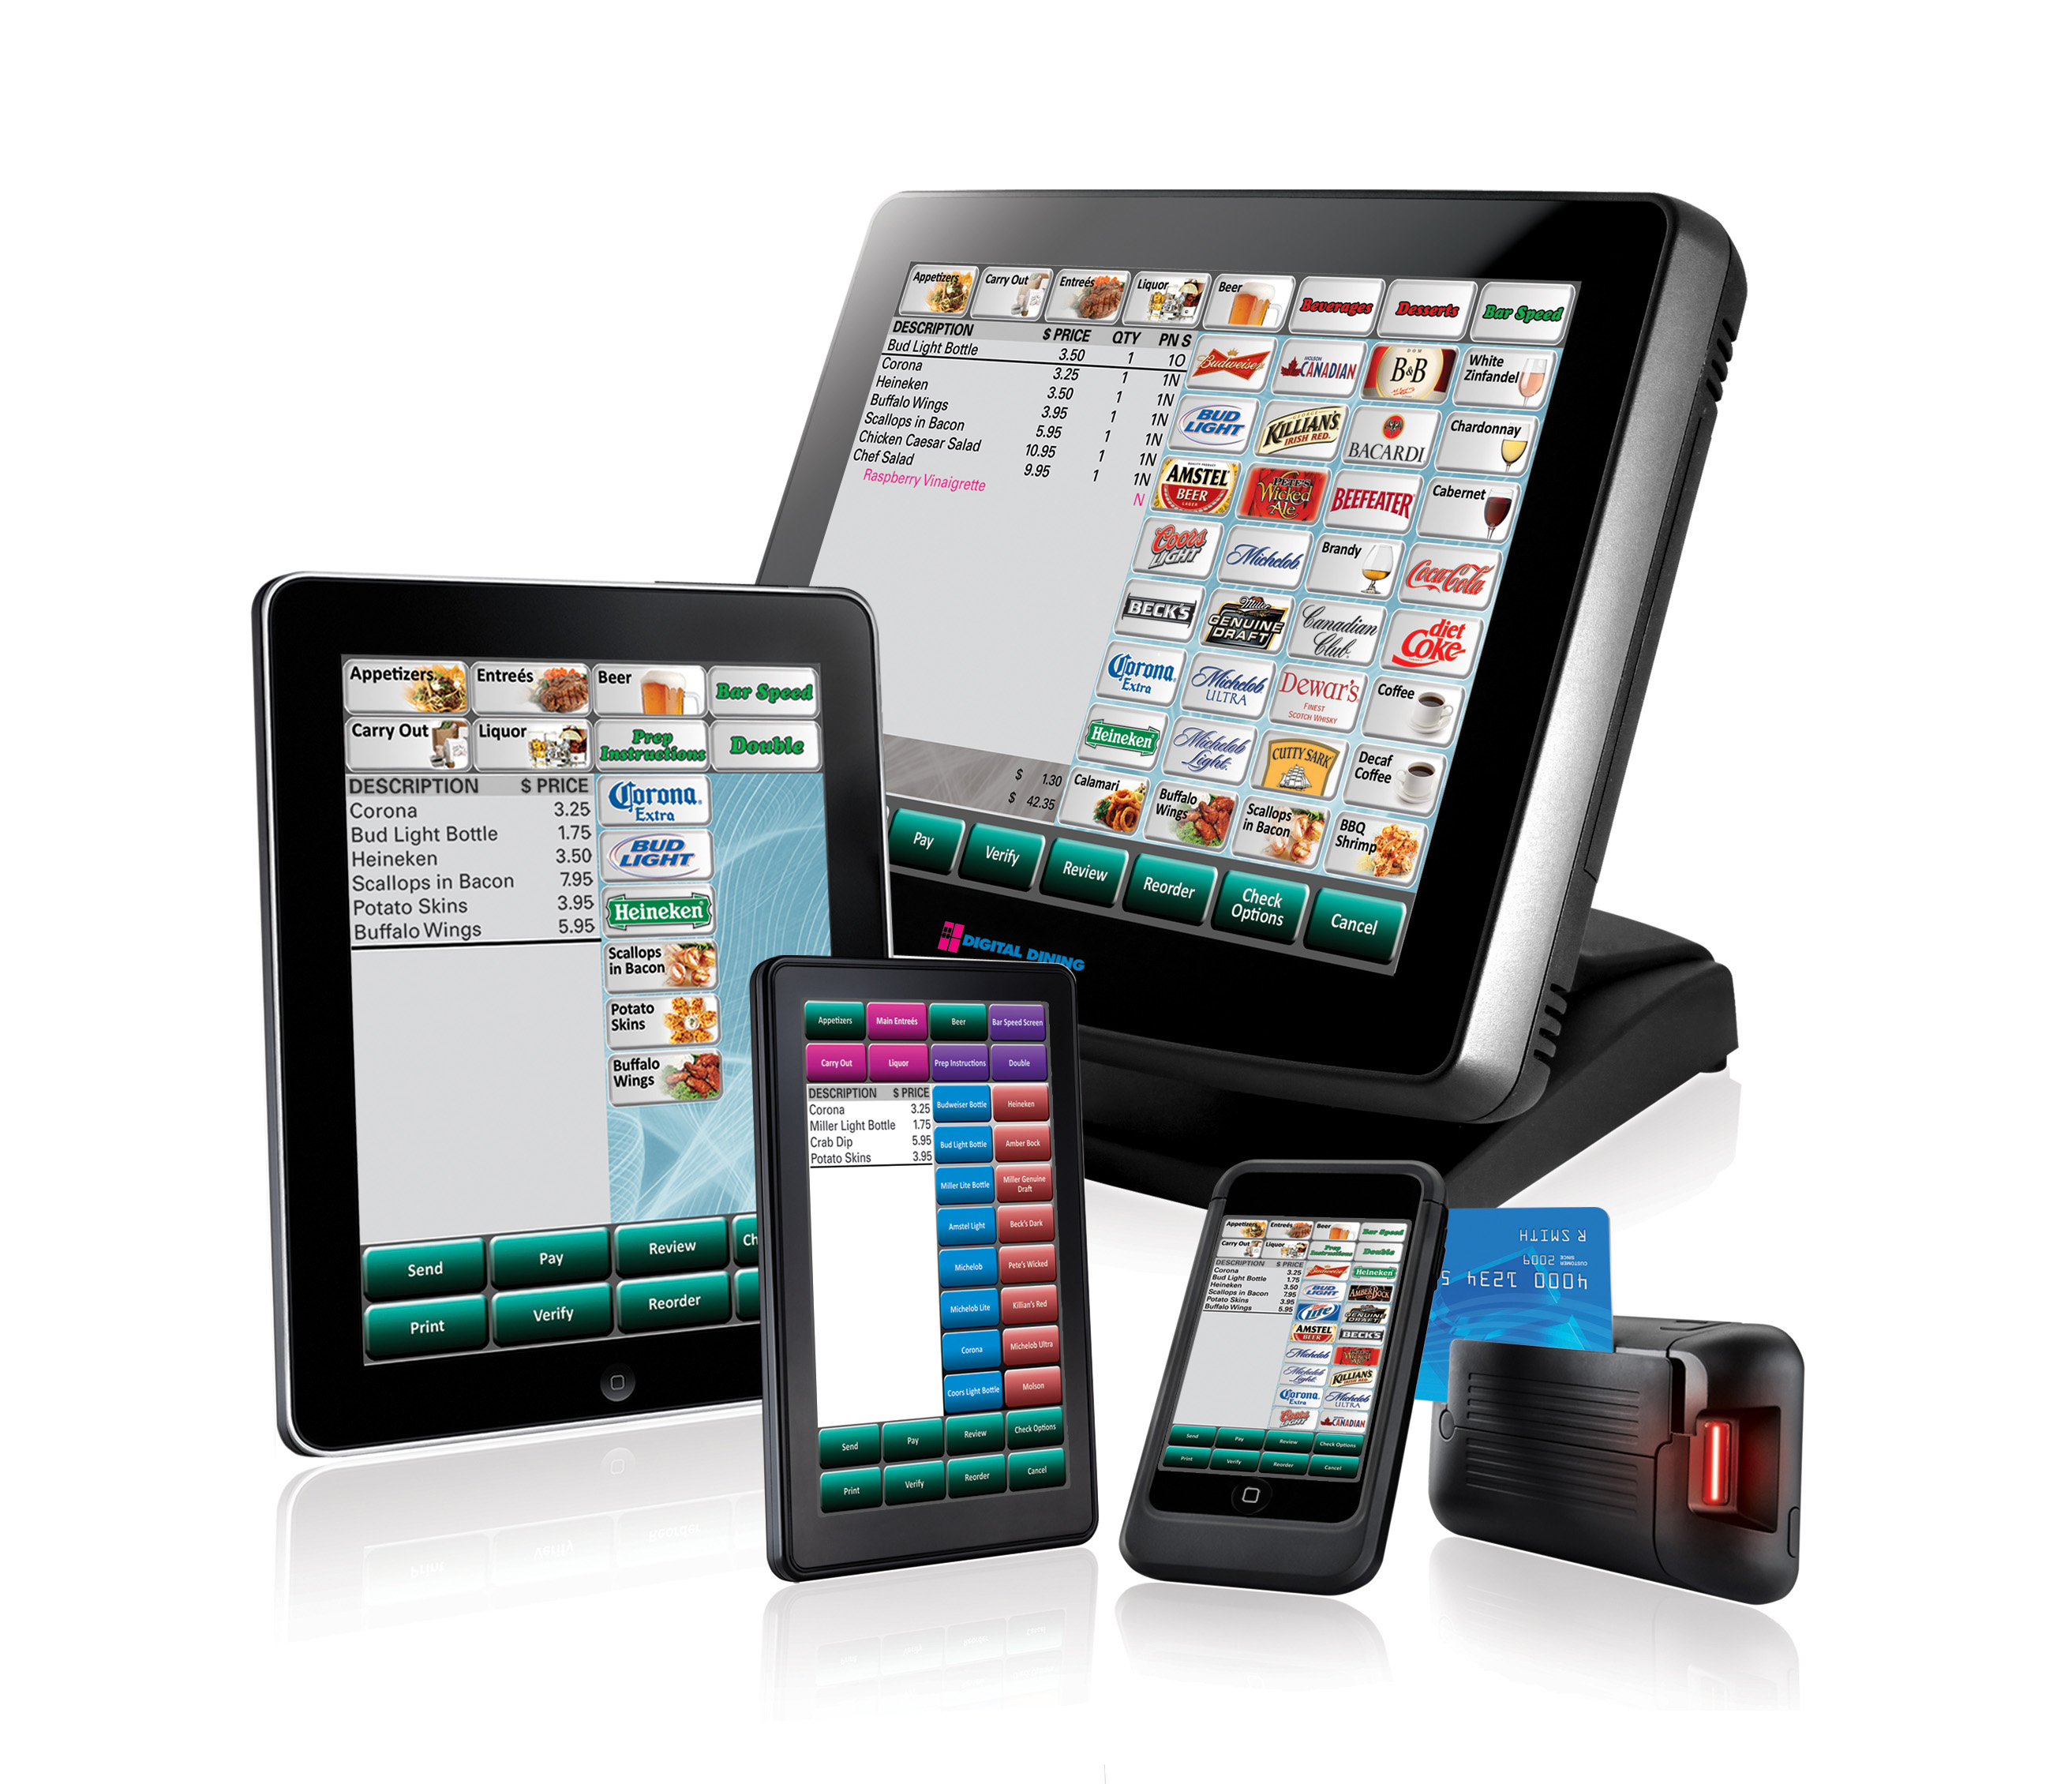 leebro pos traditional and mobile restaurant point of sale